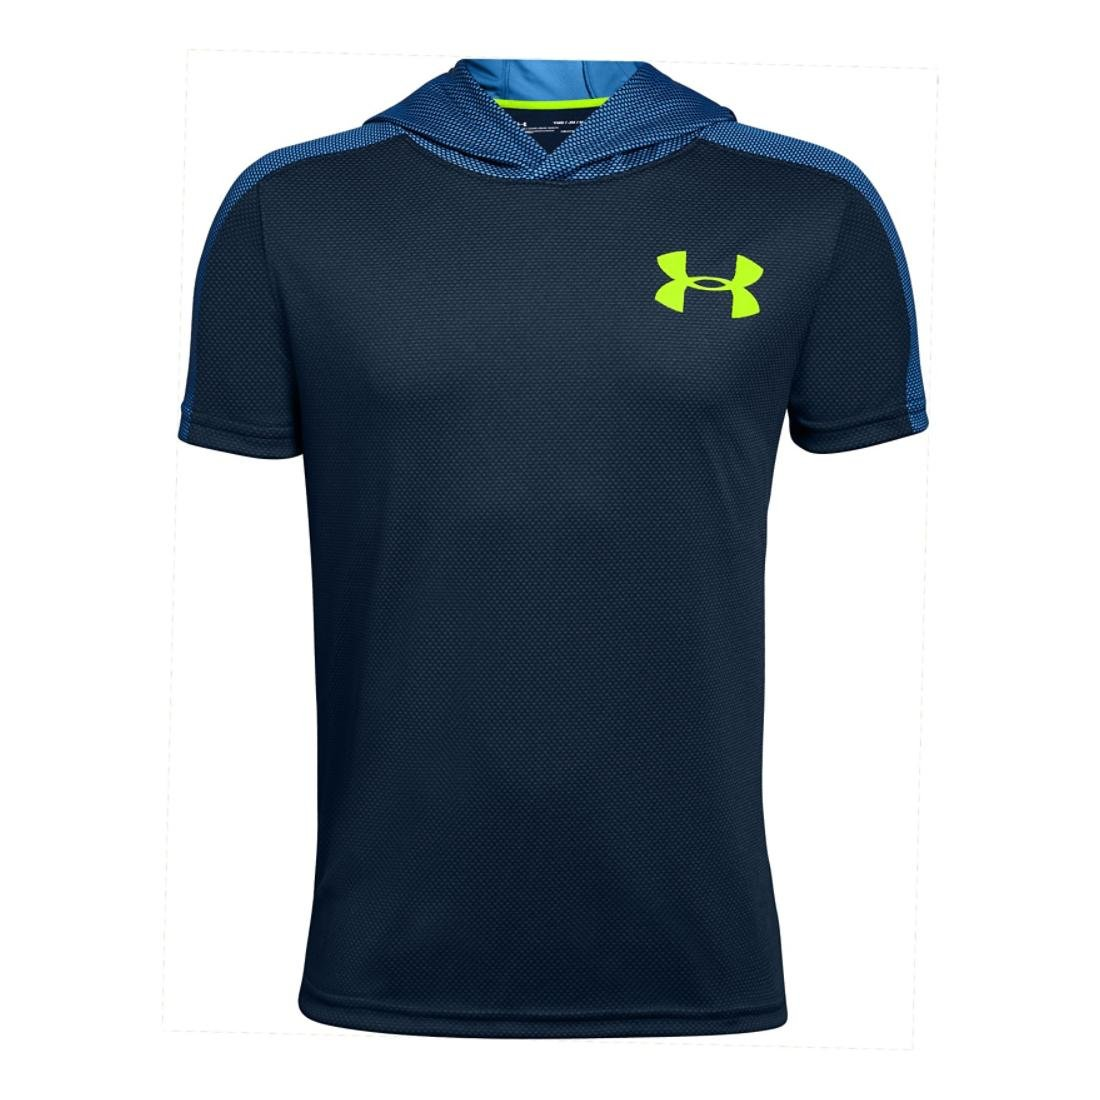 Under Armour Boys Textured Tech Short Sleeve Hood, Mediterranean/Yellow, YL by Under Armour